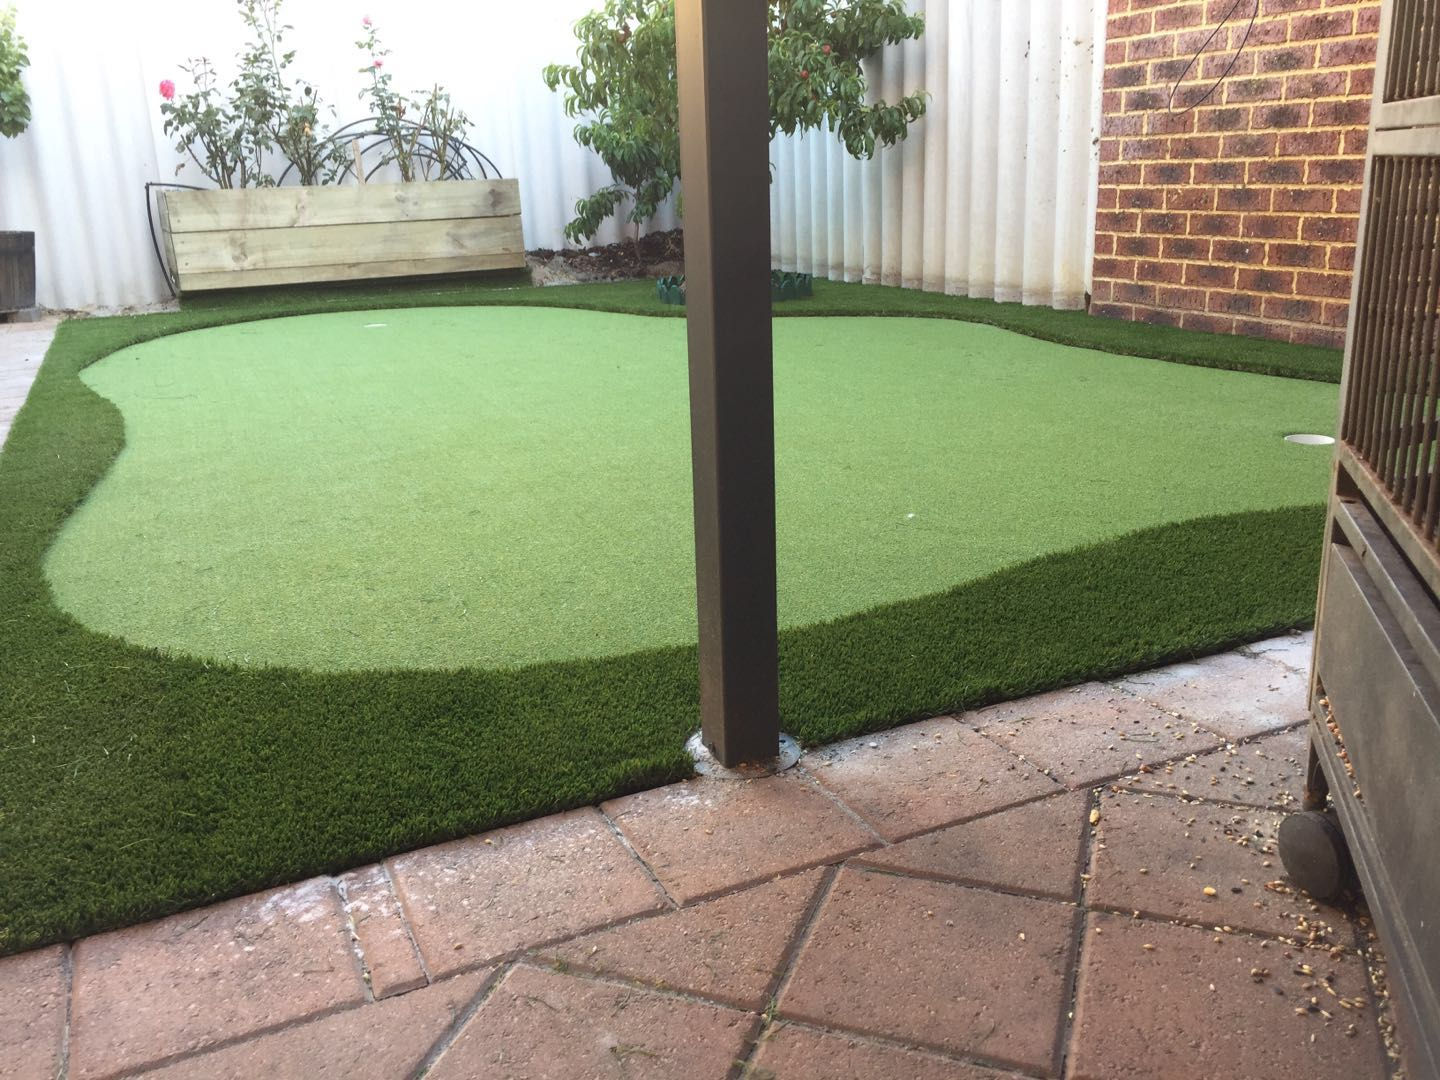 Astroturf and Artificial Grass – What's the Difference?